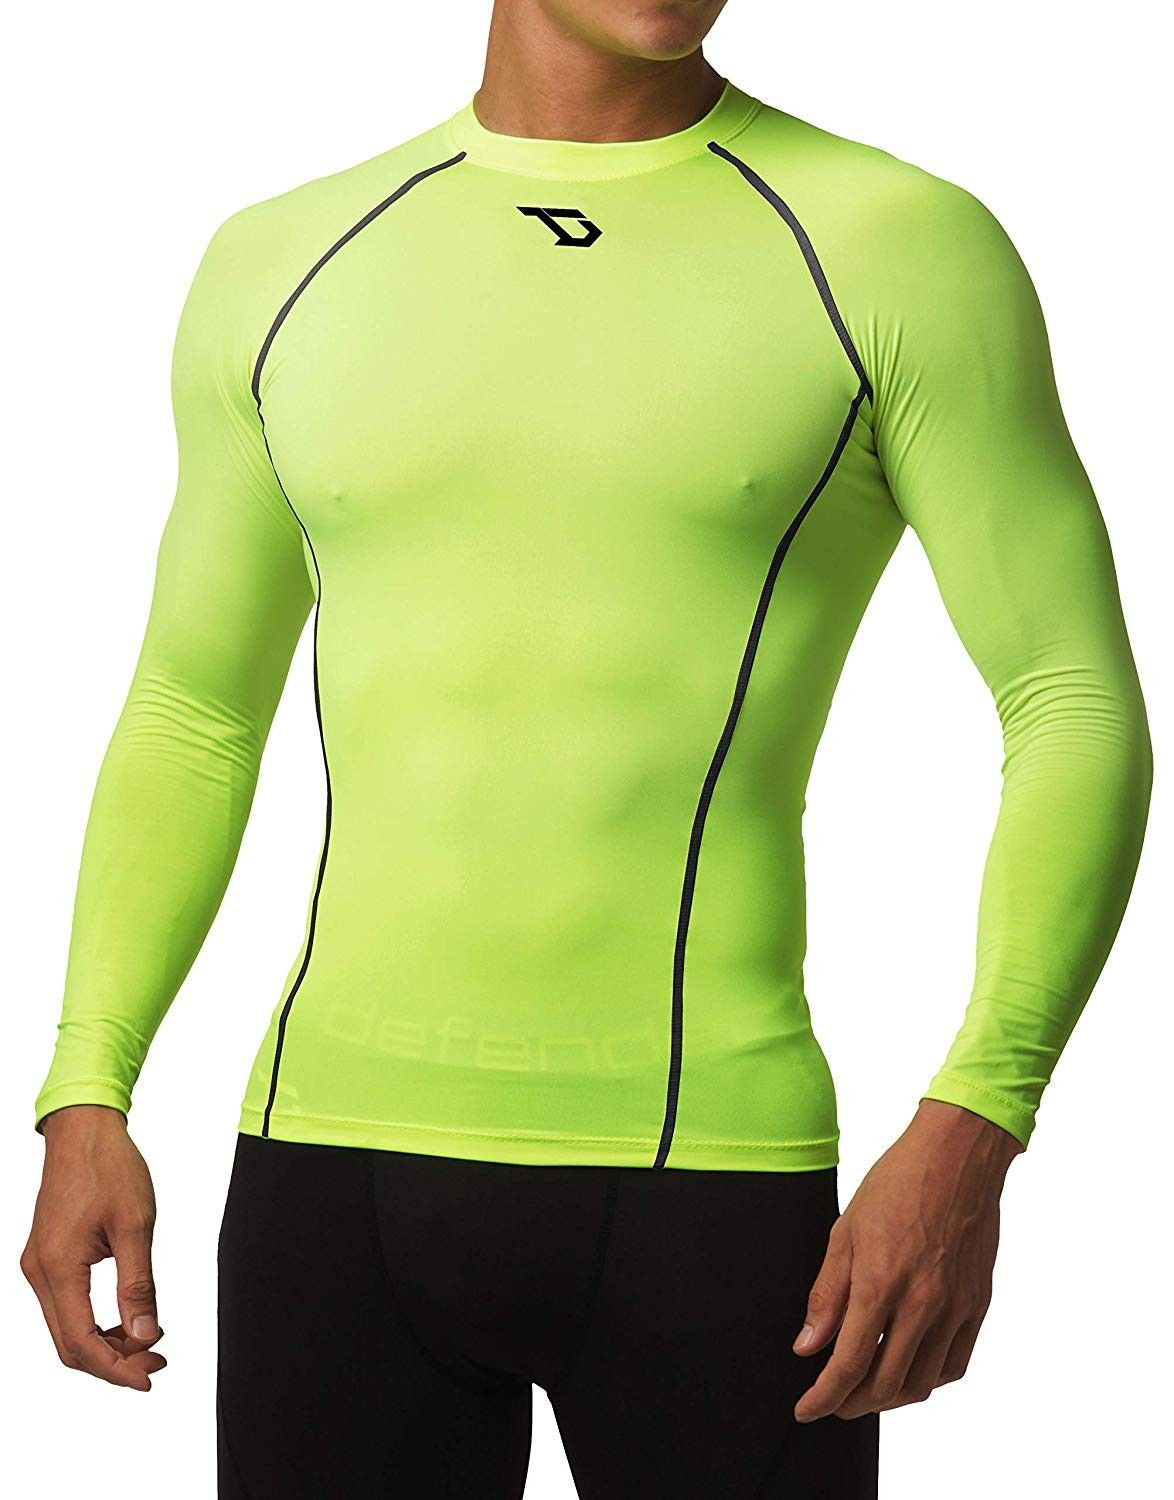 Mens Cool Dry Compression Baselayer Short Sleeve T Shirts Yoga Athletic Workout Fitness Tops